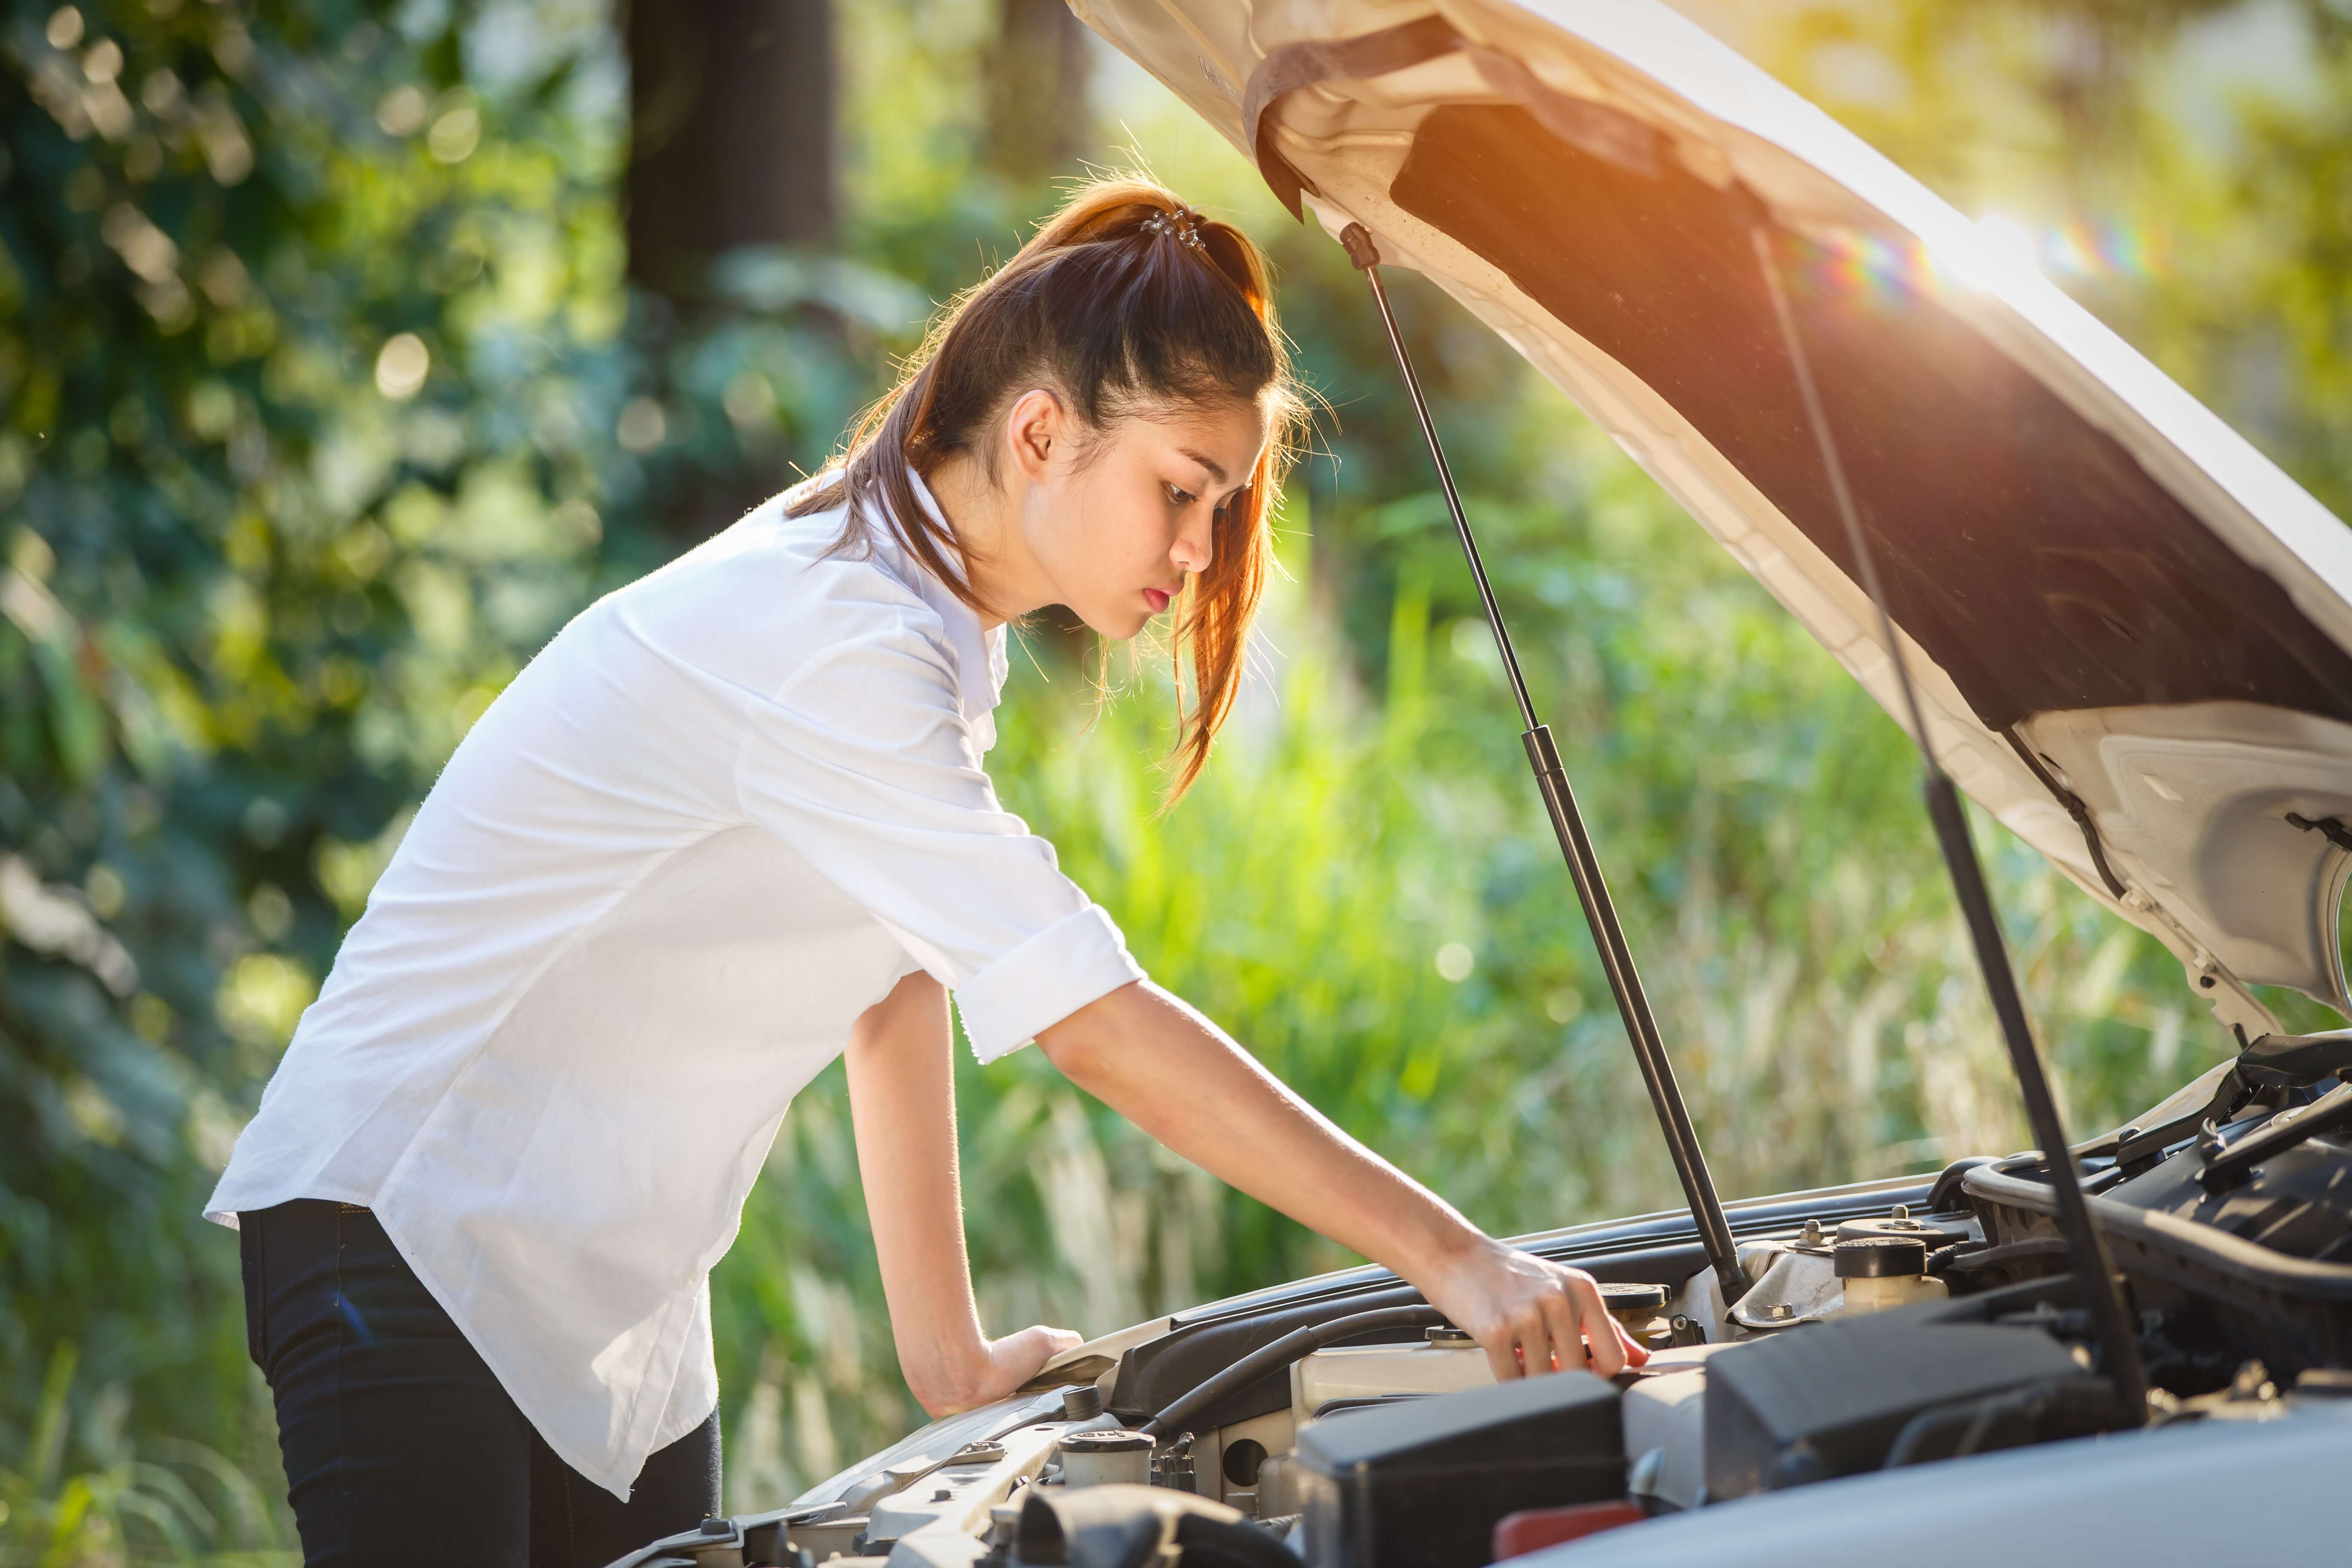 A young woman checking he engine of her car.